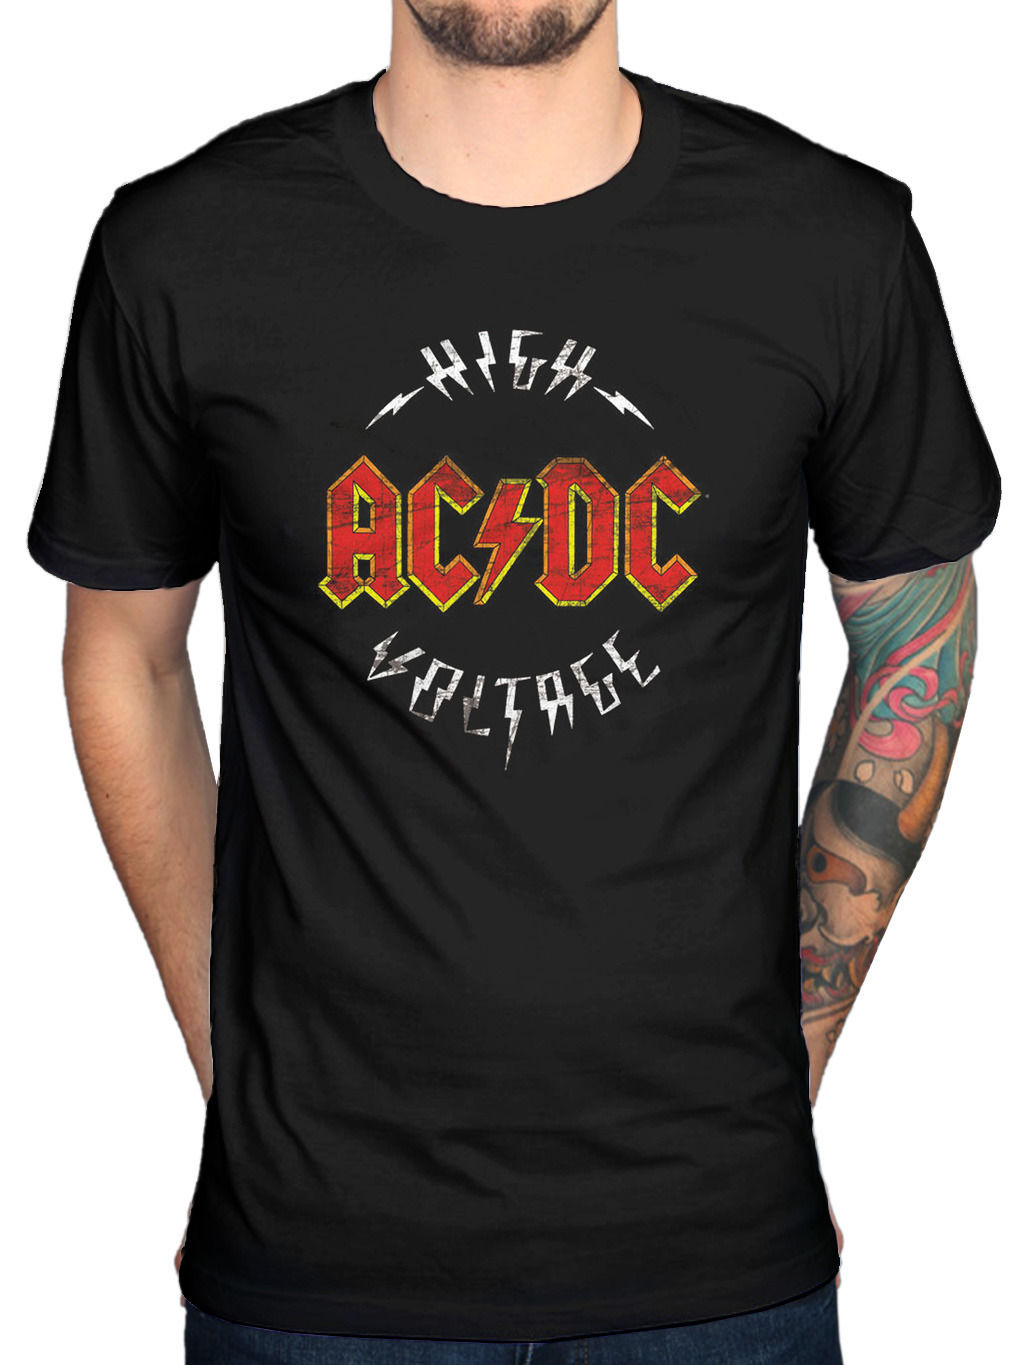 ACDC High Voltage T-Shirt Those About To Rock Back In Black Dirty Deeds ...